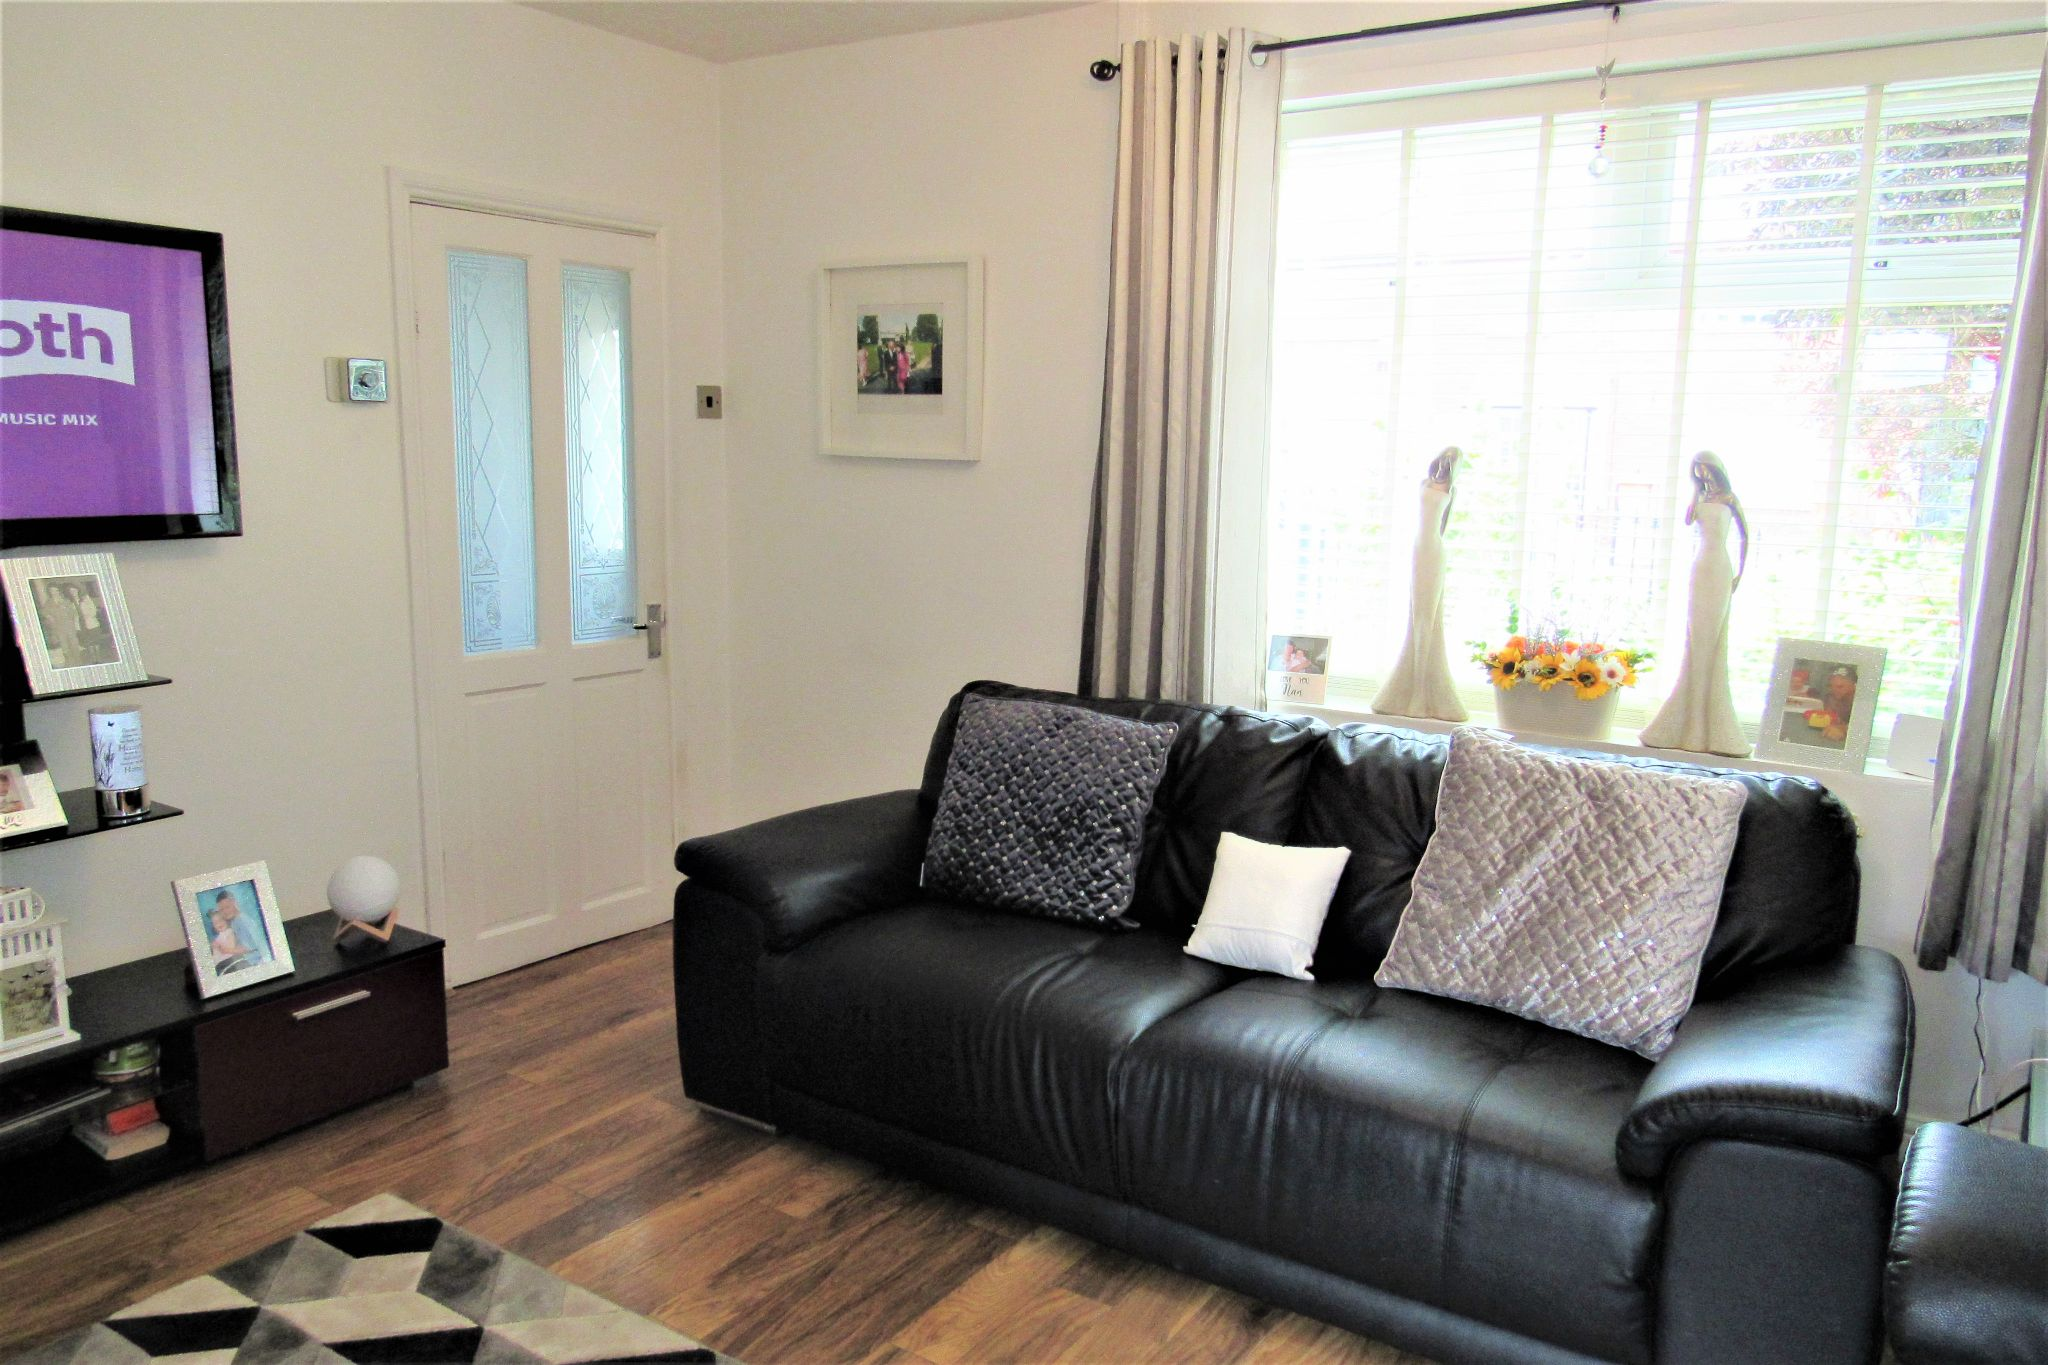 3 bedroom mid terraced house SSTC in Manchester - Photograph 2.